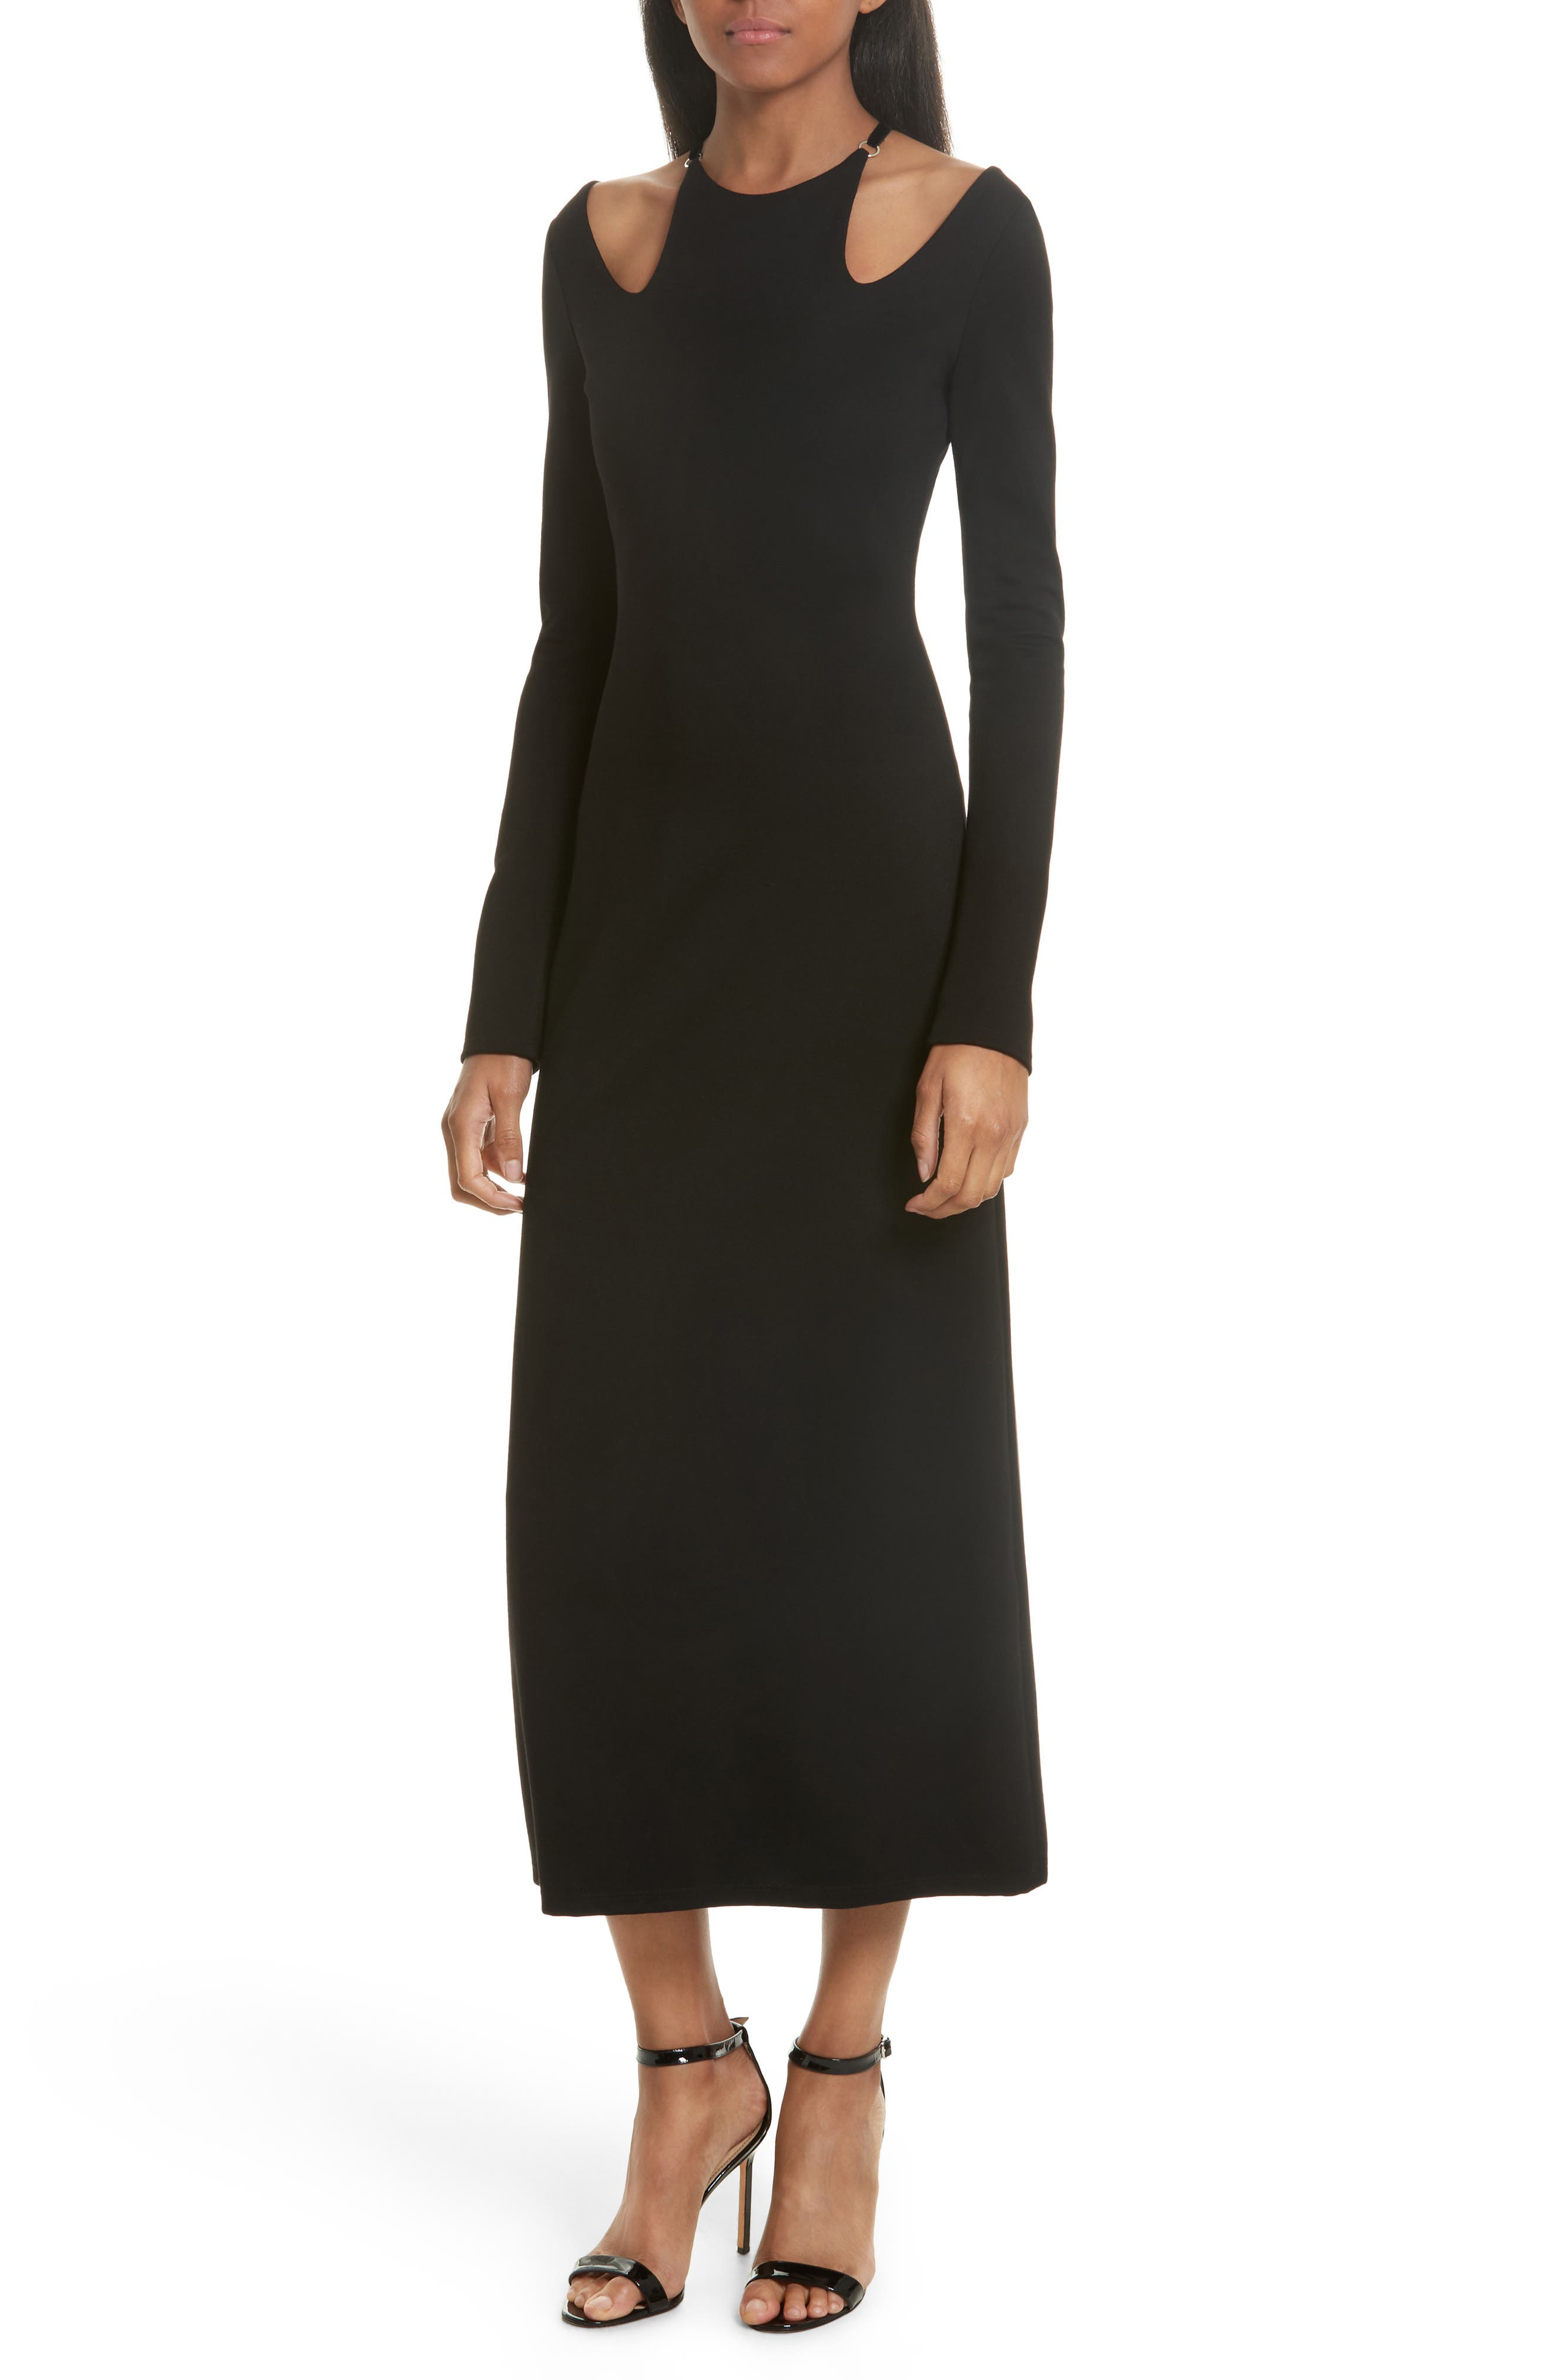 Alternate Image 1 Selected - A.L.C. Jessa Cutout Midi Dress